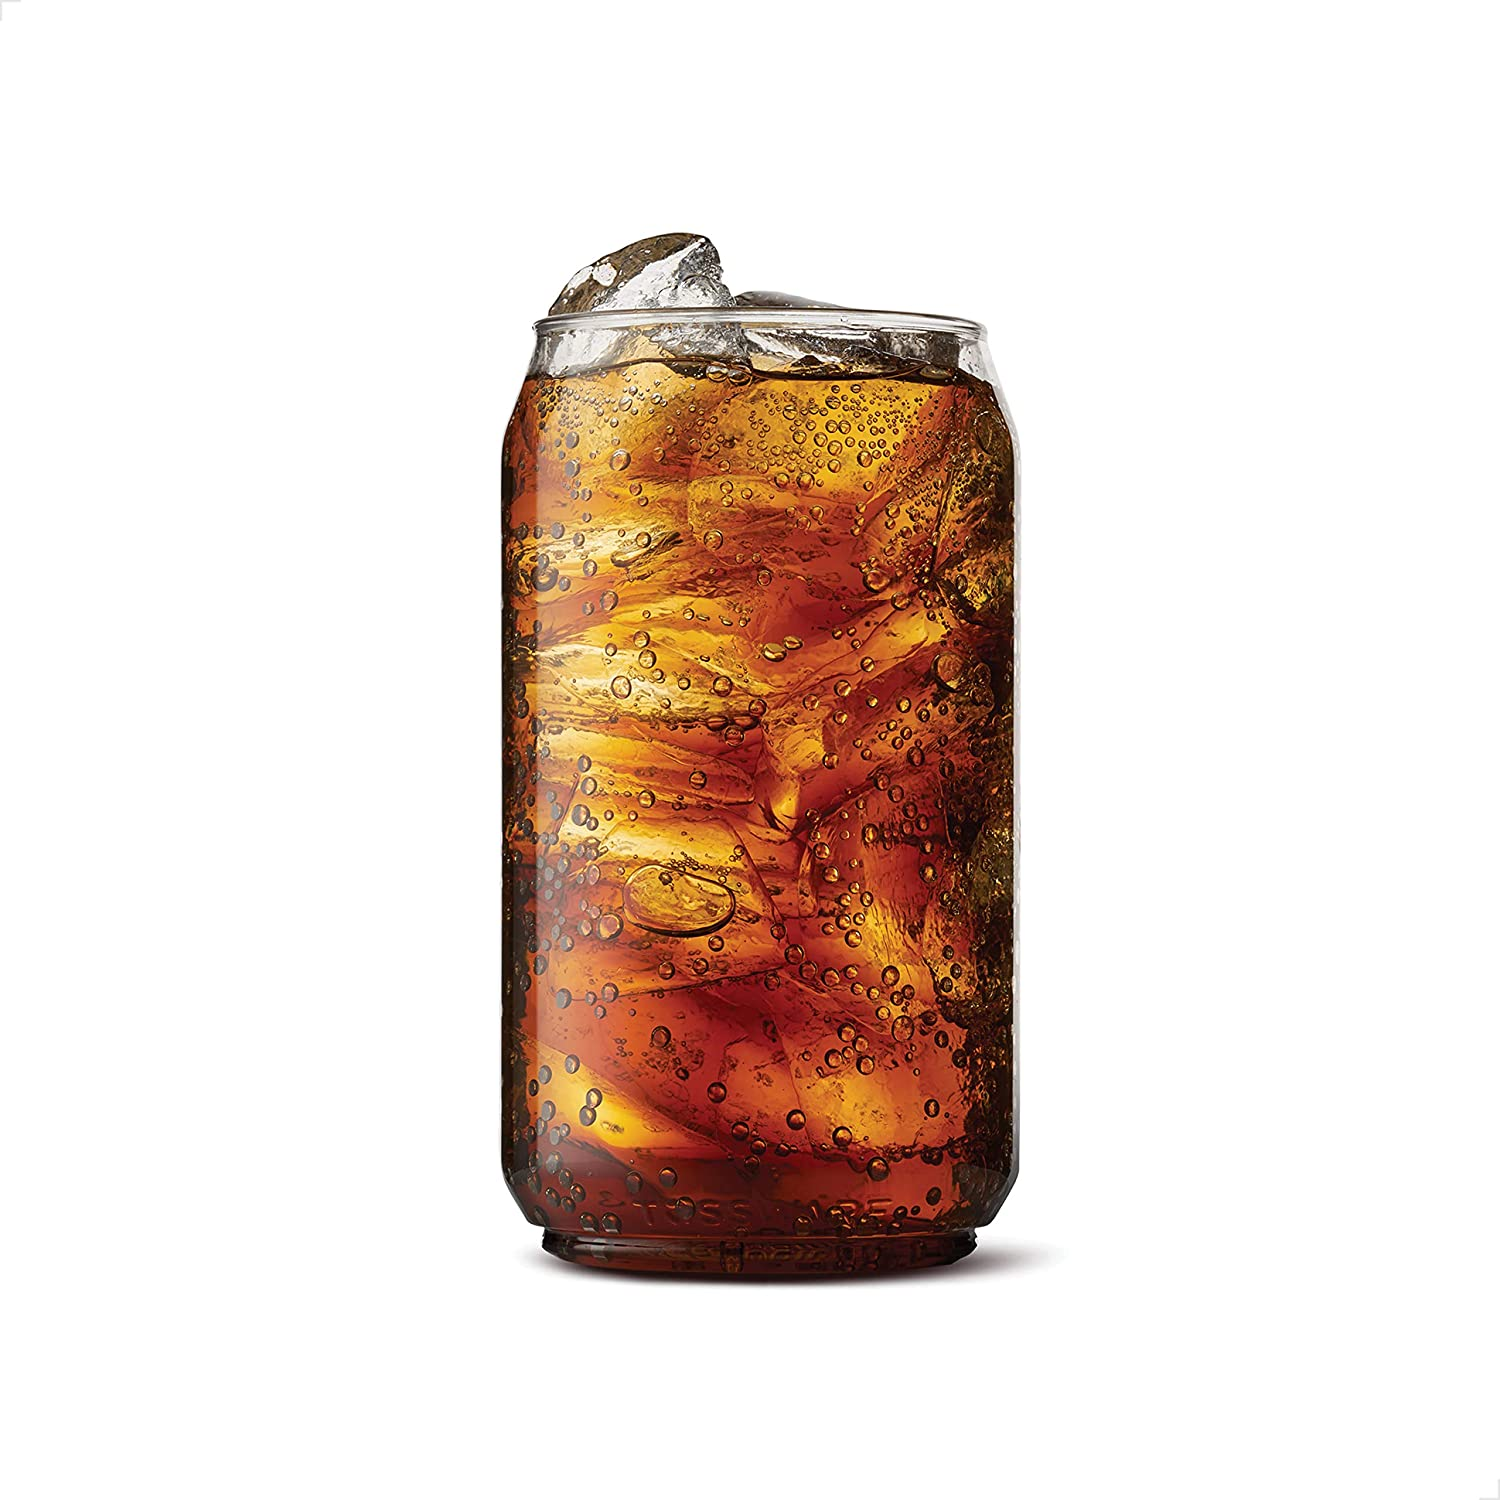 TOSSWARE POP 12oz SET OF 12, Recyclable, Unbreakable & Crystal Clear Plastic Beer Can, 12 Count (Pack of 1)